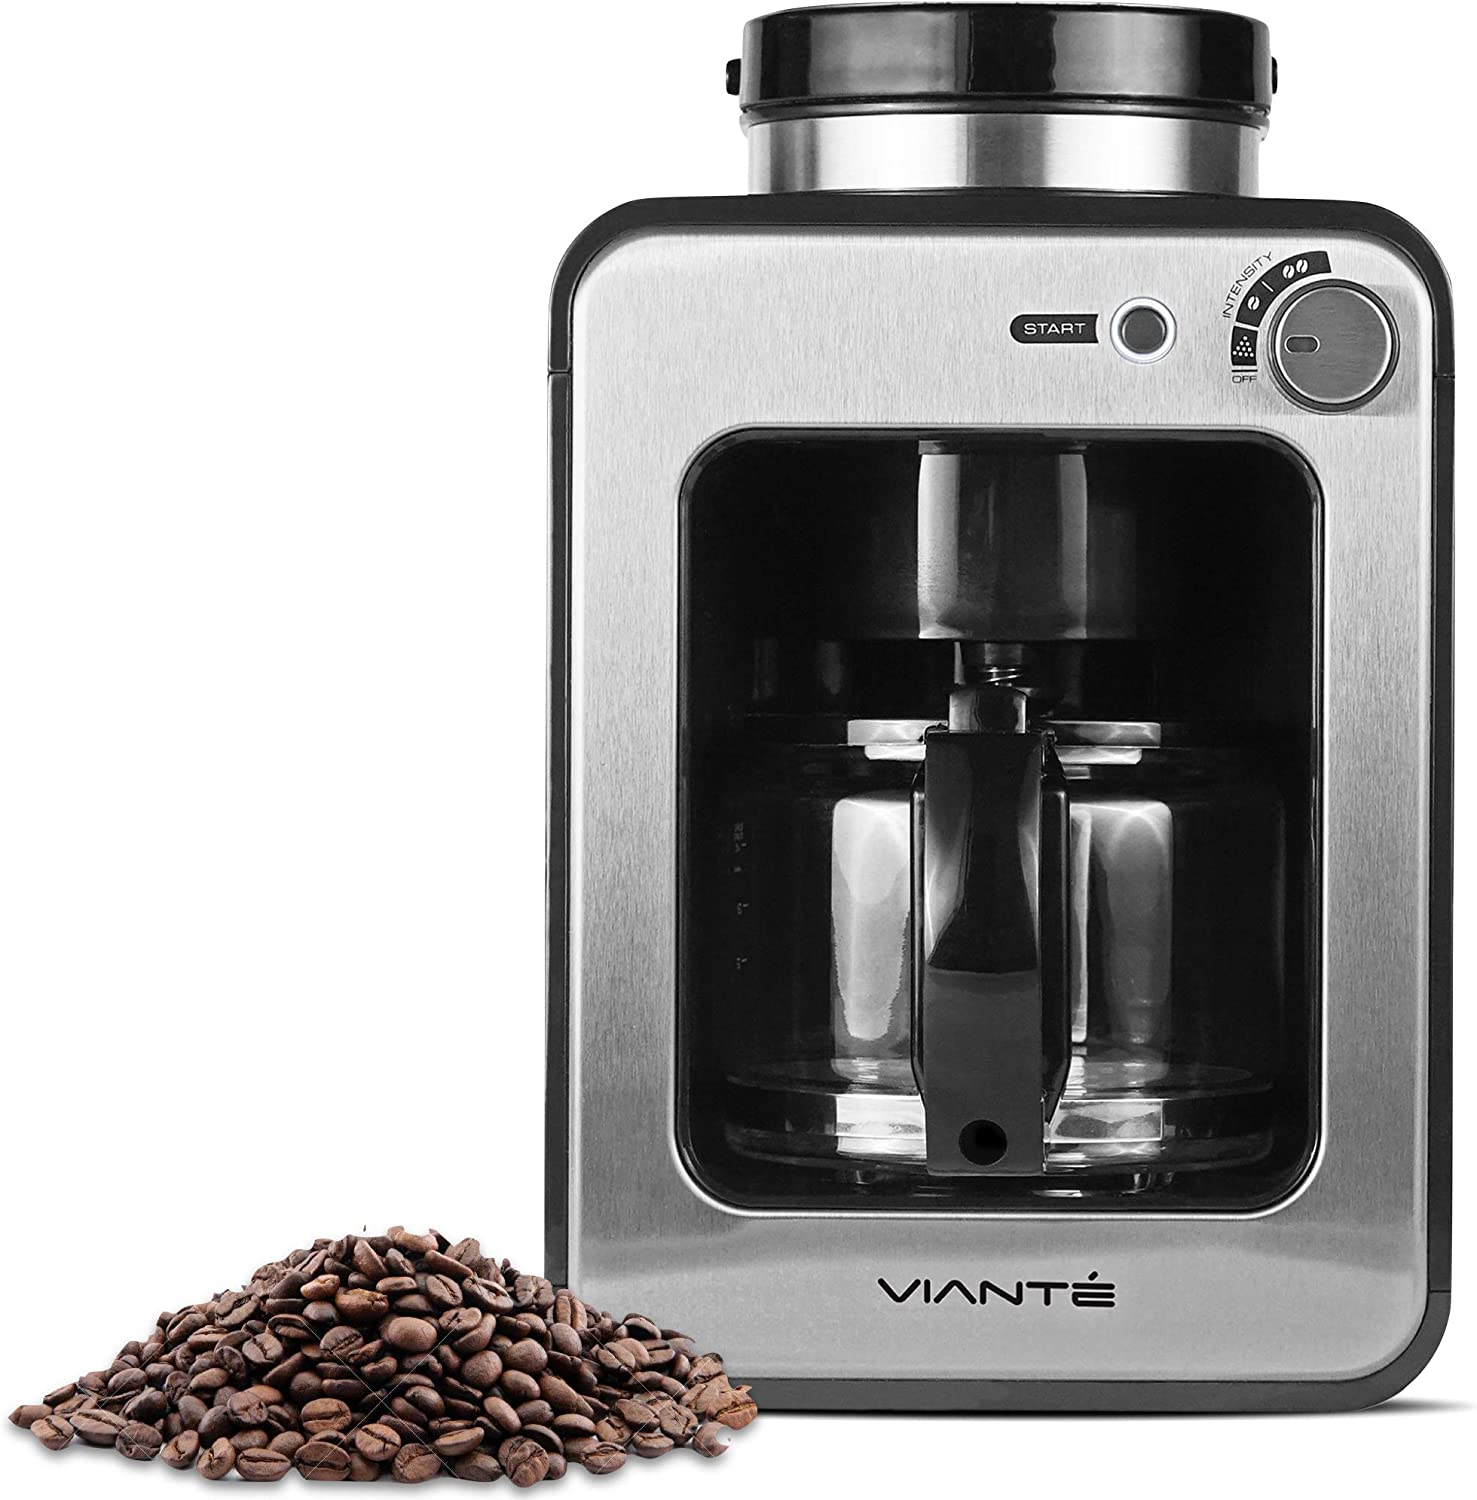 Viante Mini Coffee Maker with grinder built in | Grind and Brew. Bean to Cup | Uses Whole Coffee Beans or Ground Coffee | 4 Cups Glass Carafe | Coffee Strength Selector | Compact Size